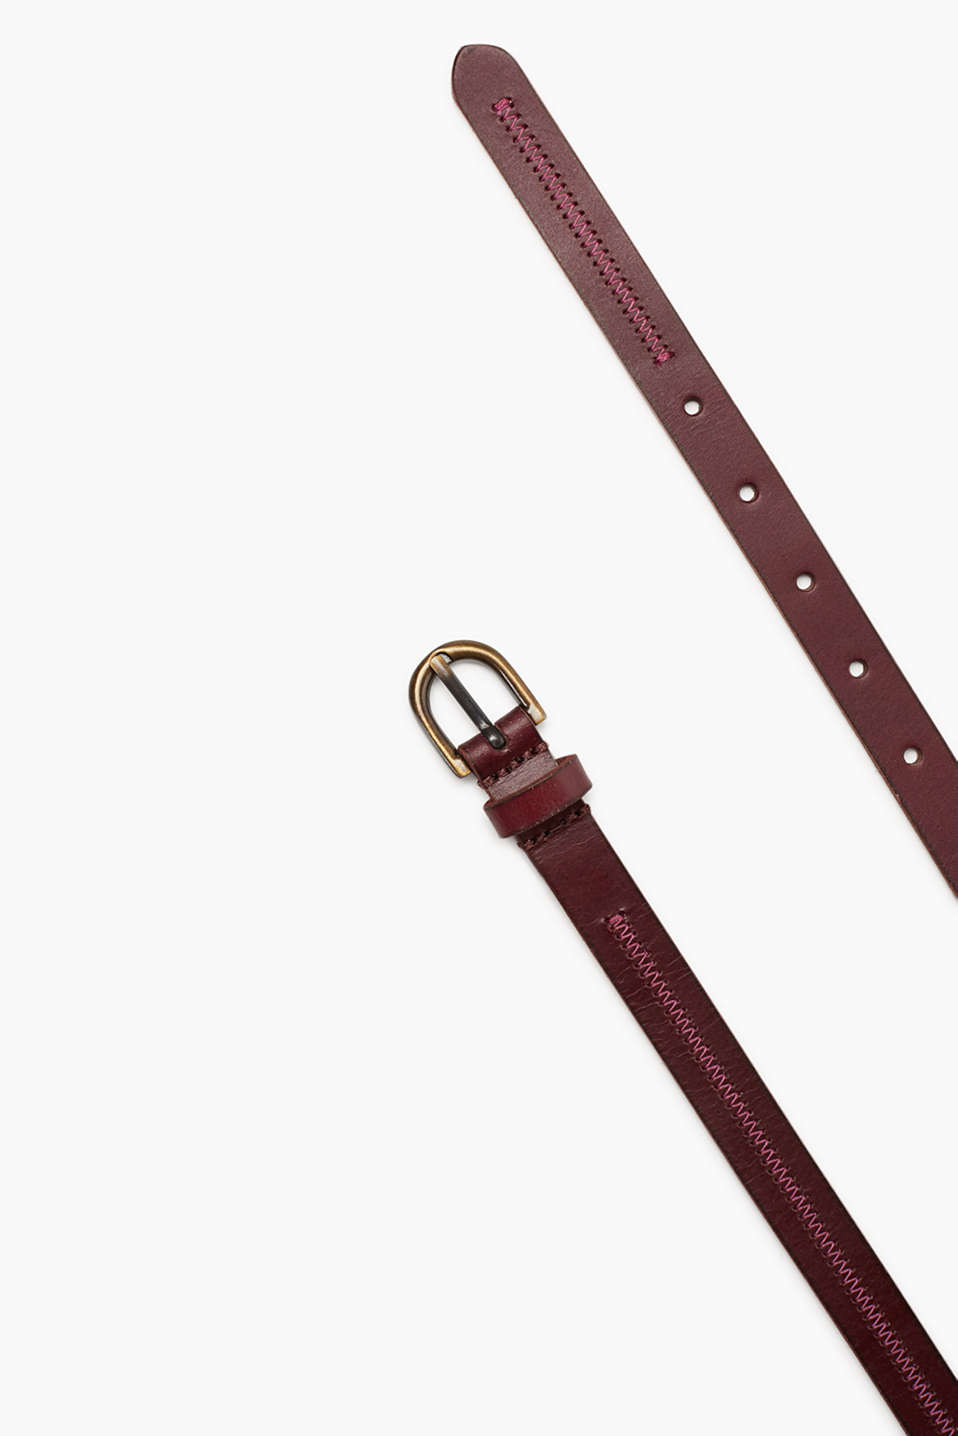 Narrow belt in high-quality, smooth buffalo leather with embroidery and a vintage flair